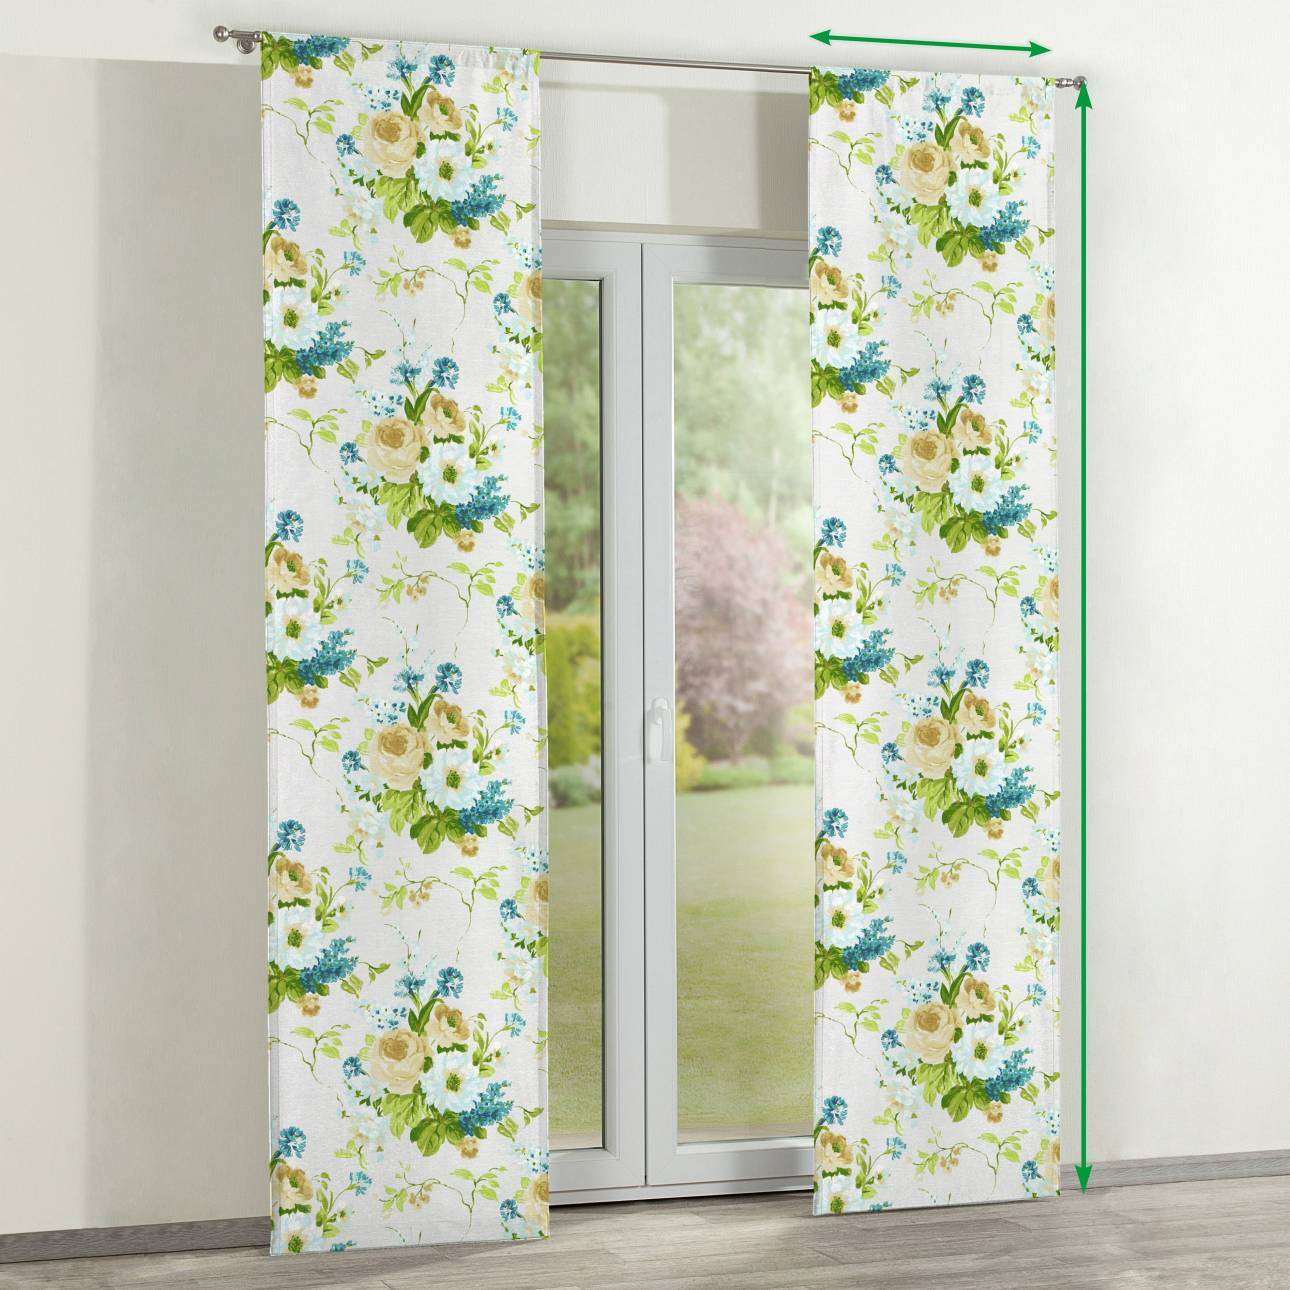 Slot panel curtains – Set of 2 in collection Mirella, fabric: 141-15